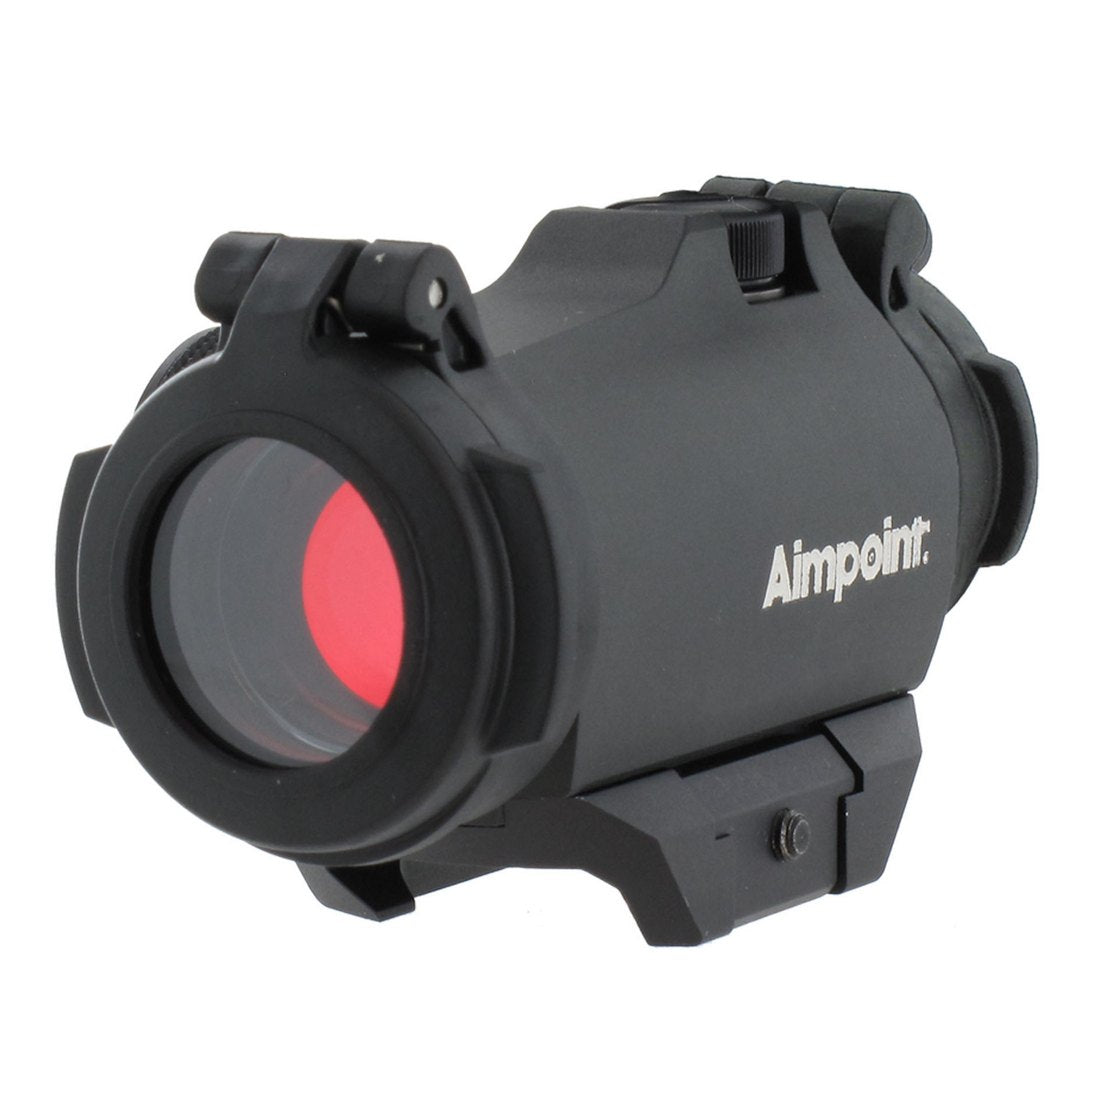 Aimpoint 200185 MICRO H-2 Sight - Security Pro USA